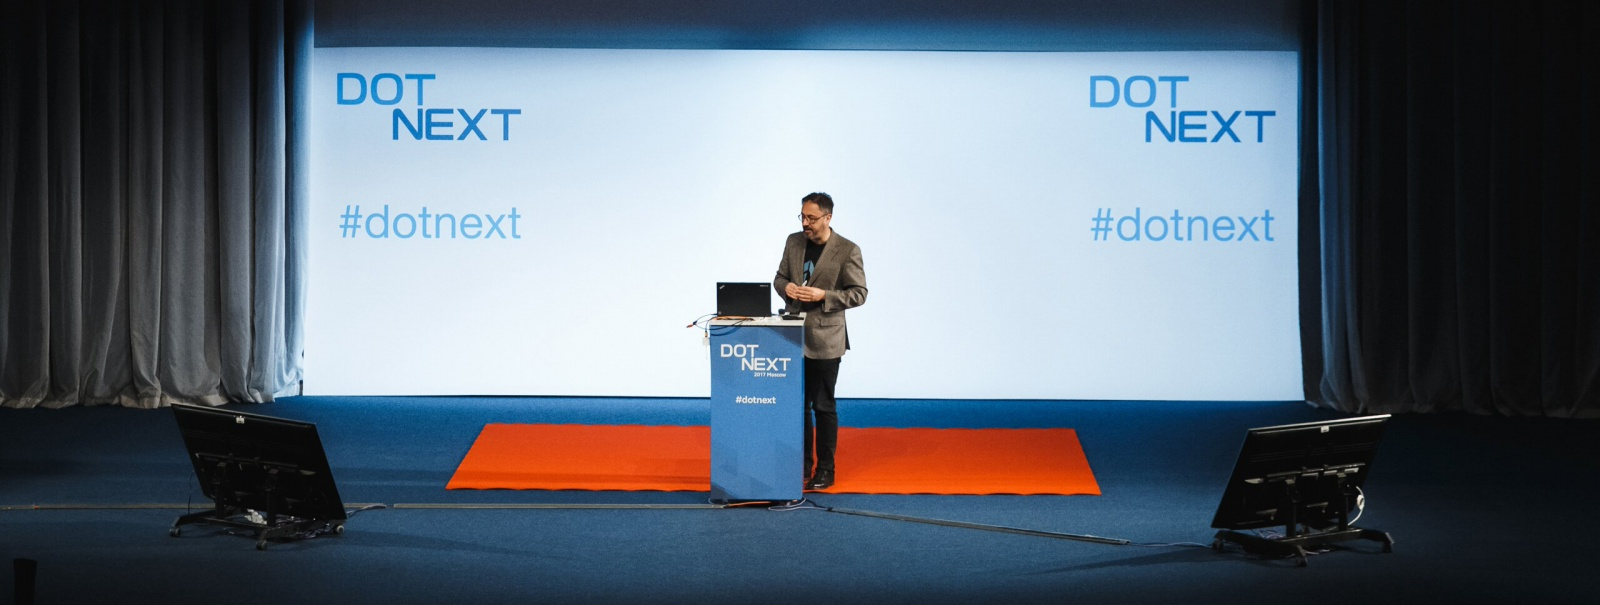 DotNext 2018 Piter Release Notes - 1